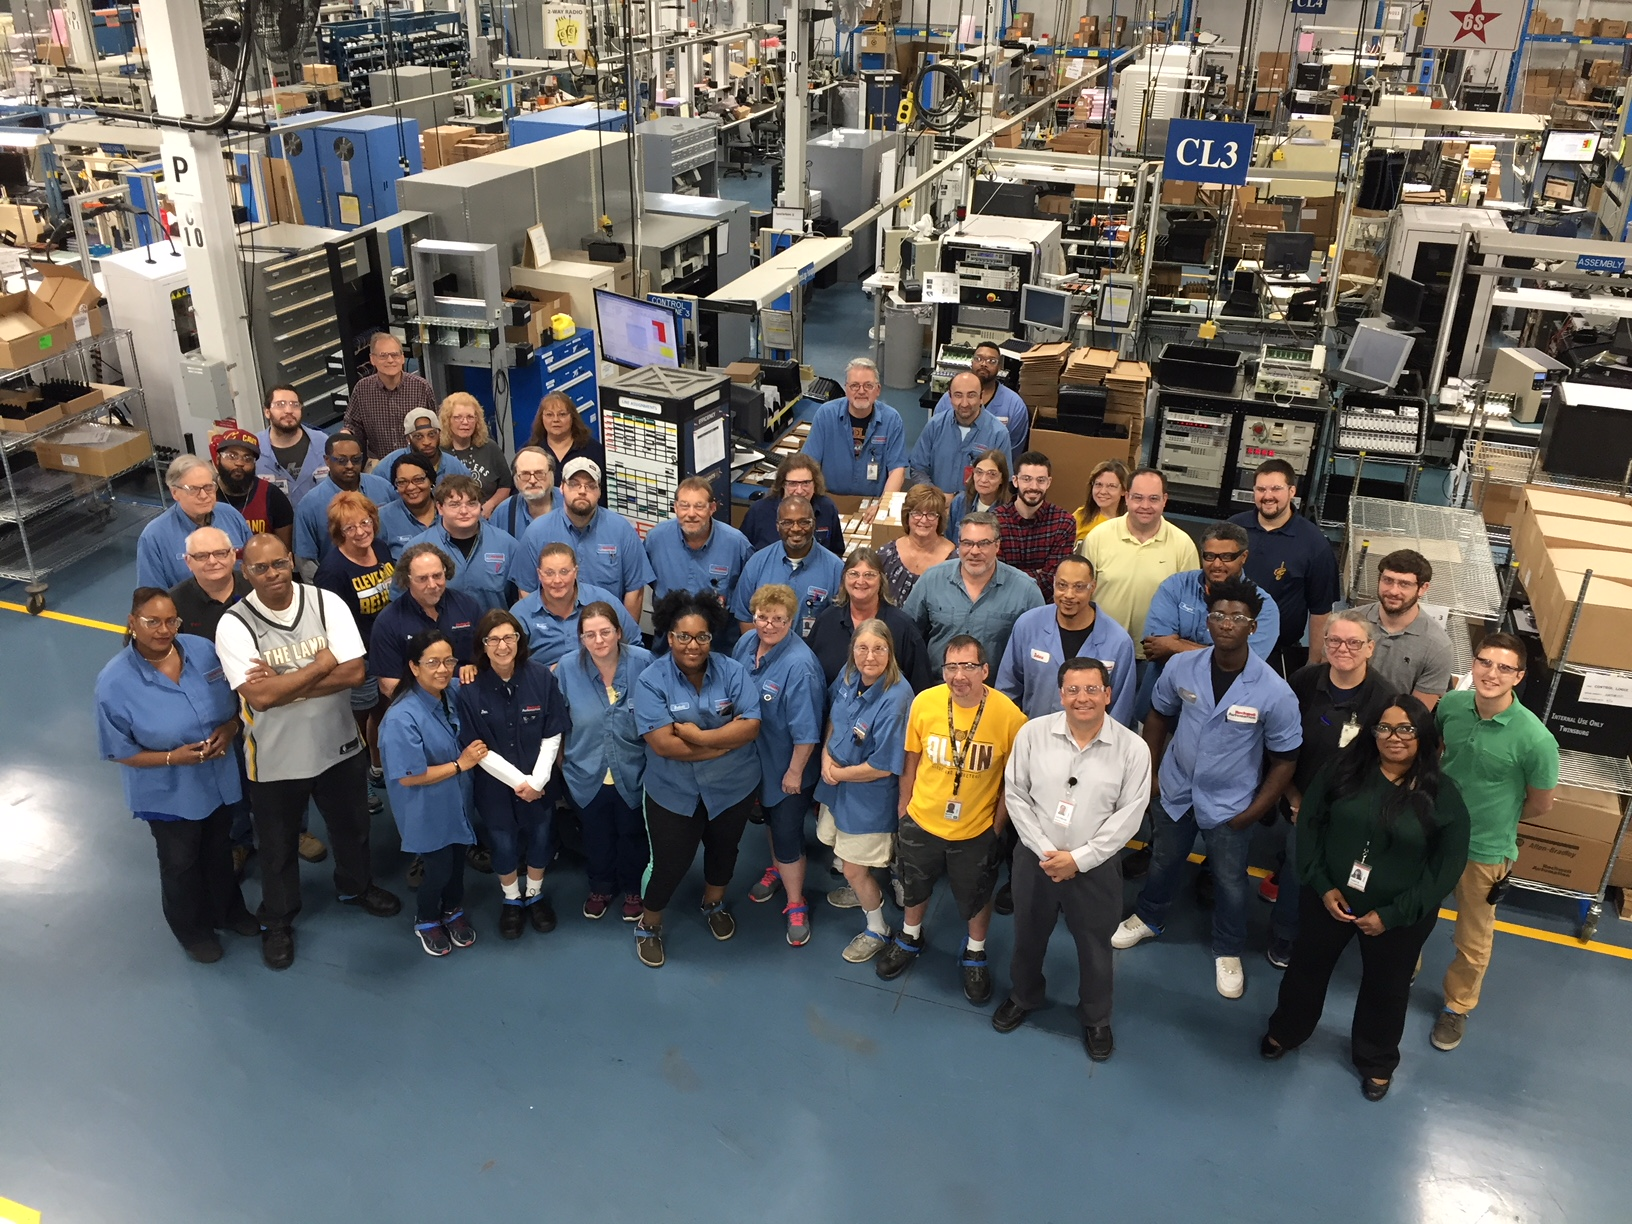 Rockwell Automation Materials Department, Production Department, and Supervisors celebrating a major milestone for their Controllogix Processor after producing their 2 millionth unit.